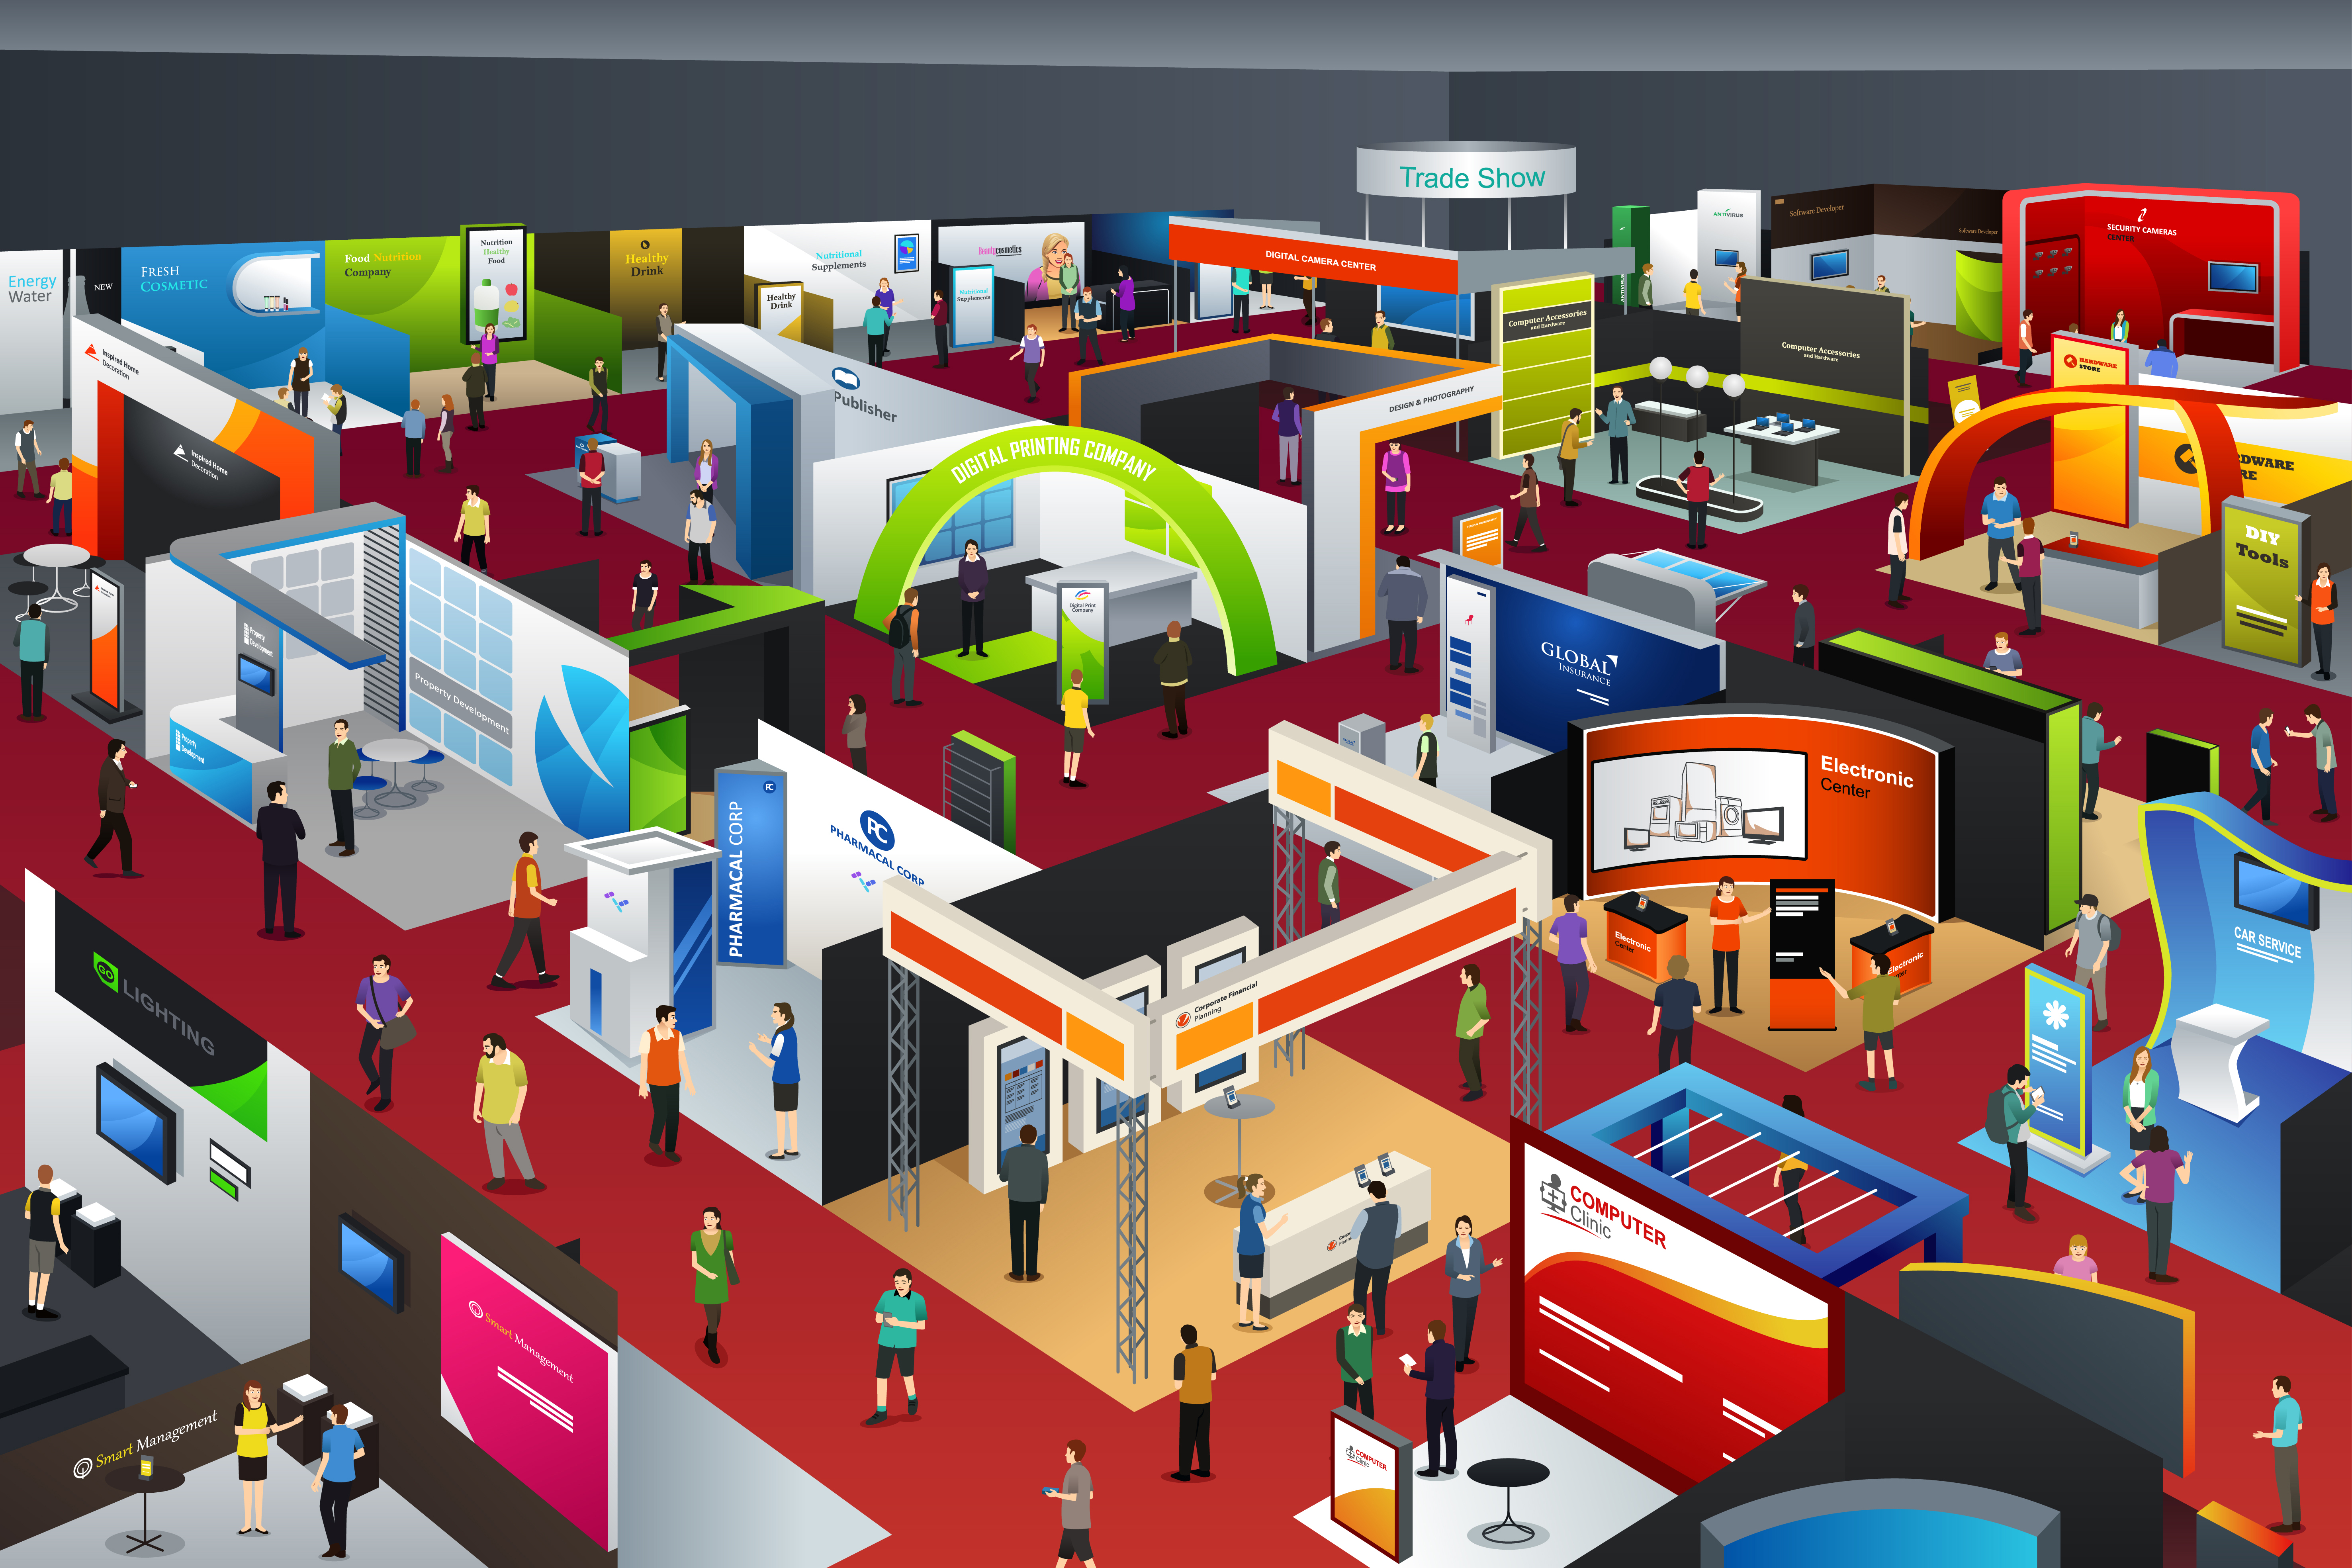 Trade show conference floor